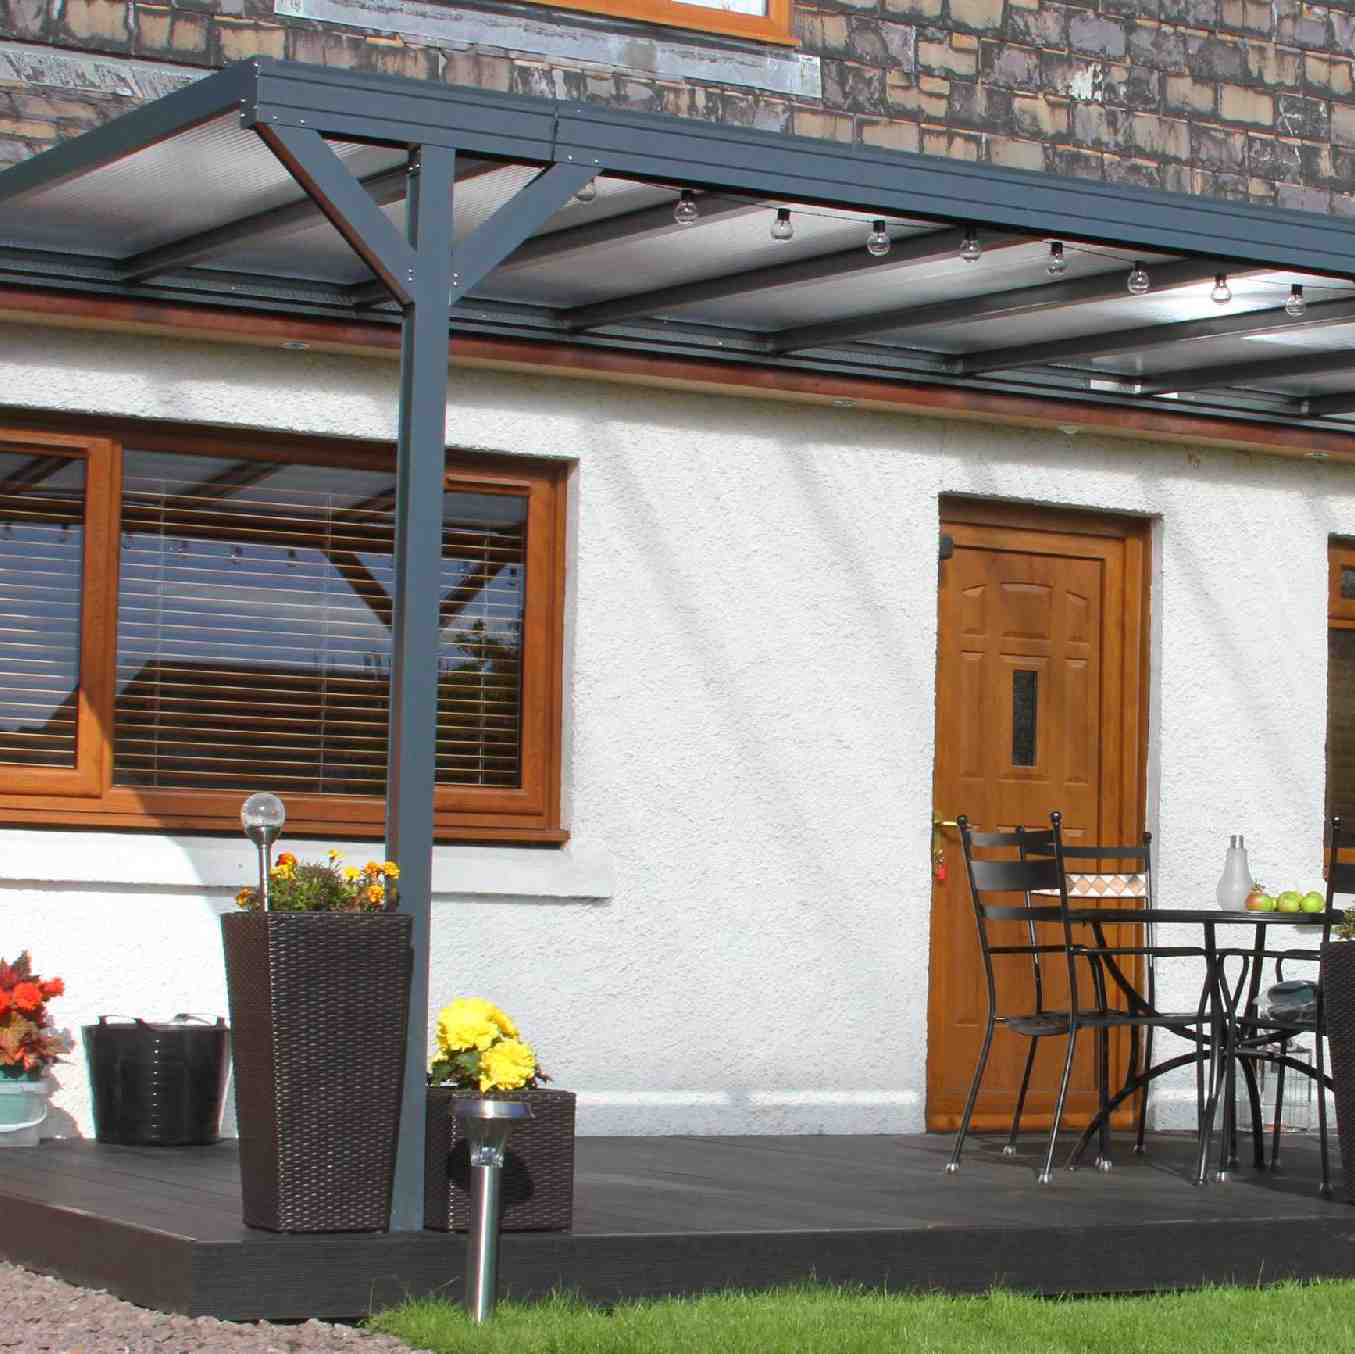 Omega Verandah, Anthracite Grey, 16mm Polycarbonate Glazing - 12.0m (W) x 1.5m (P), (5) Supporting Posts